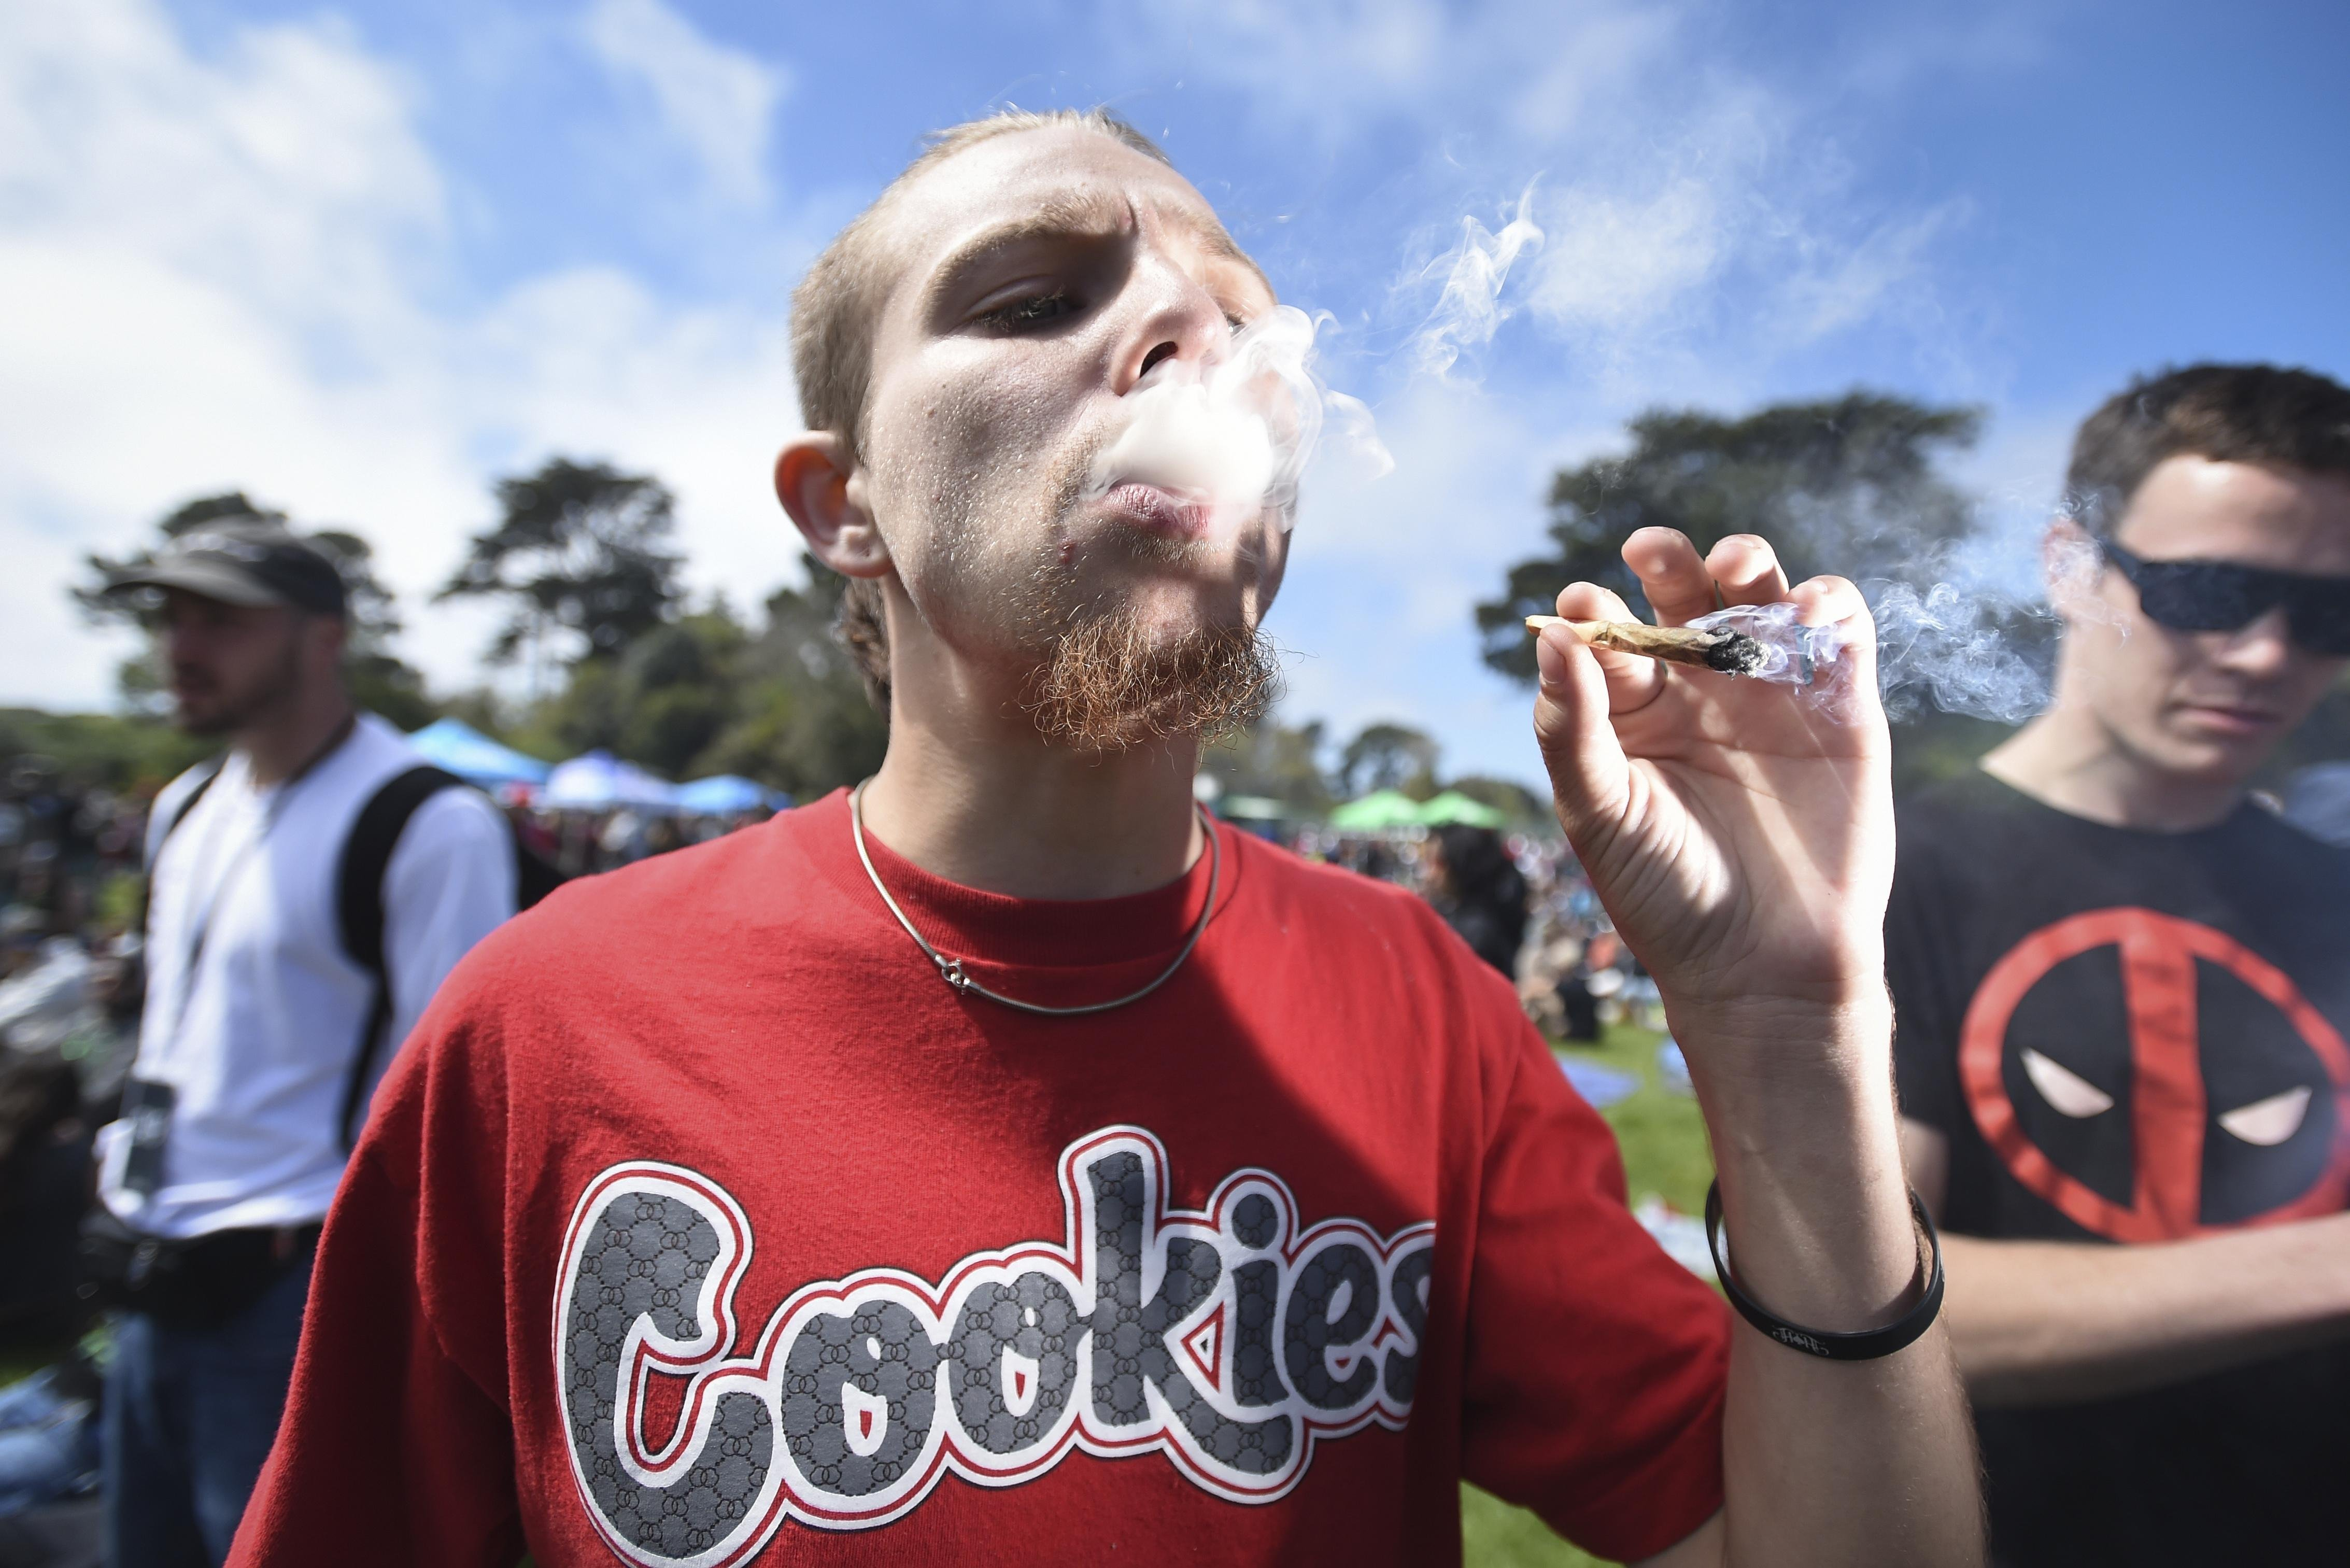 Marijuana research shows possible negative effects